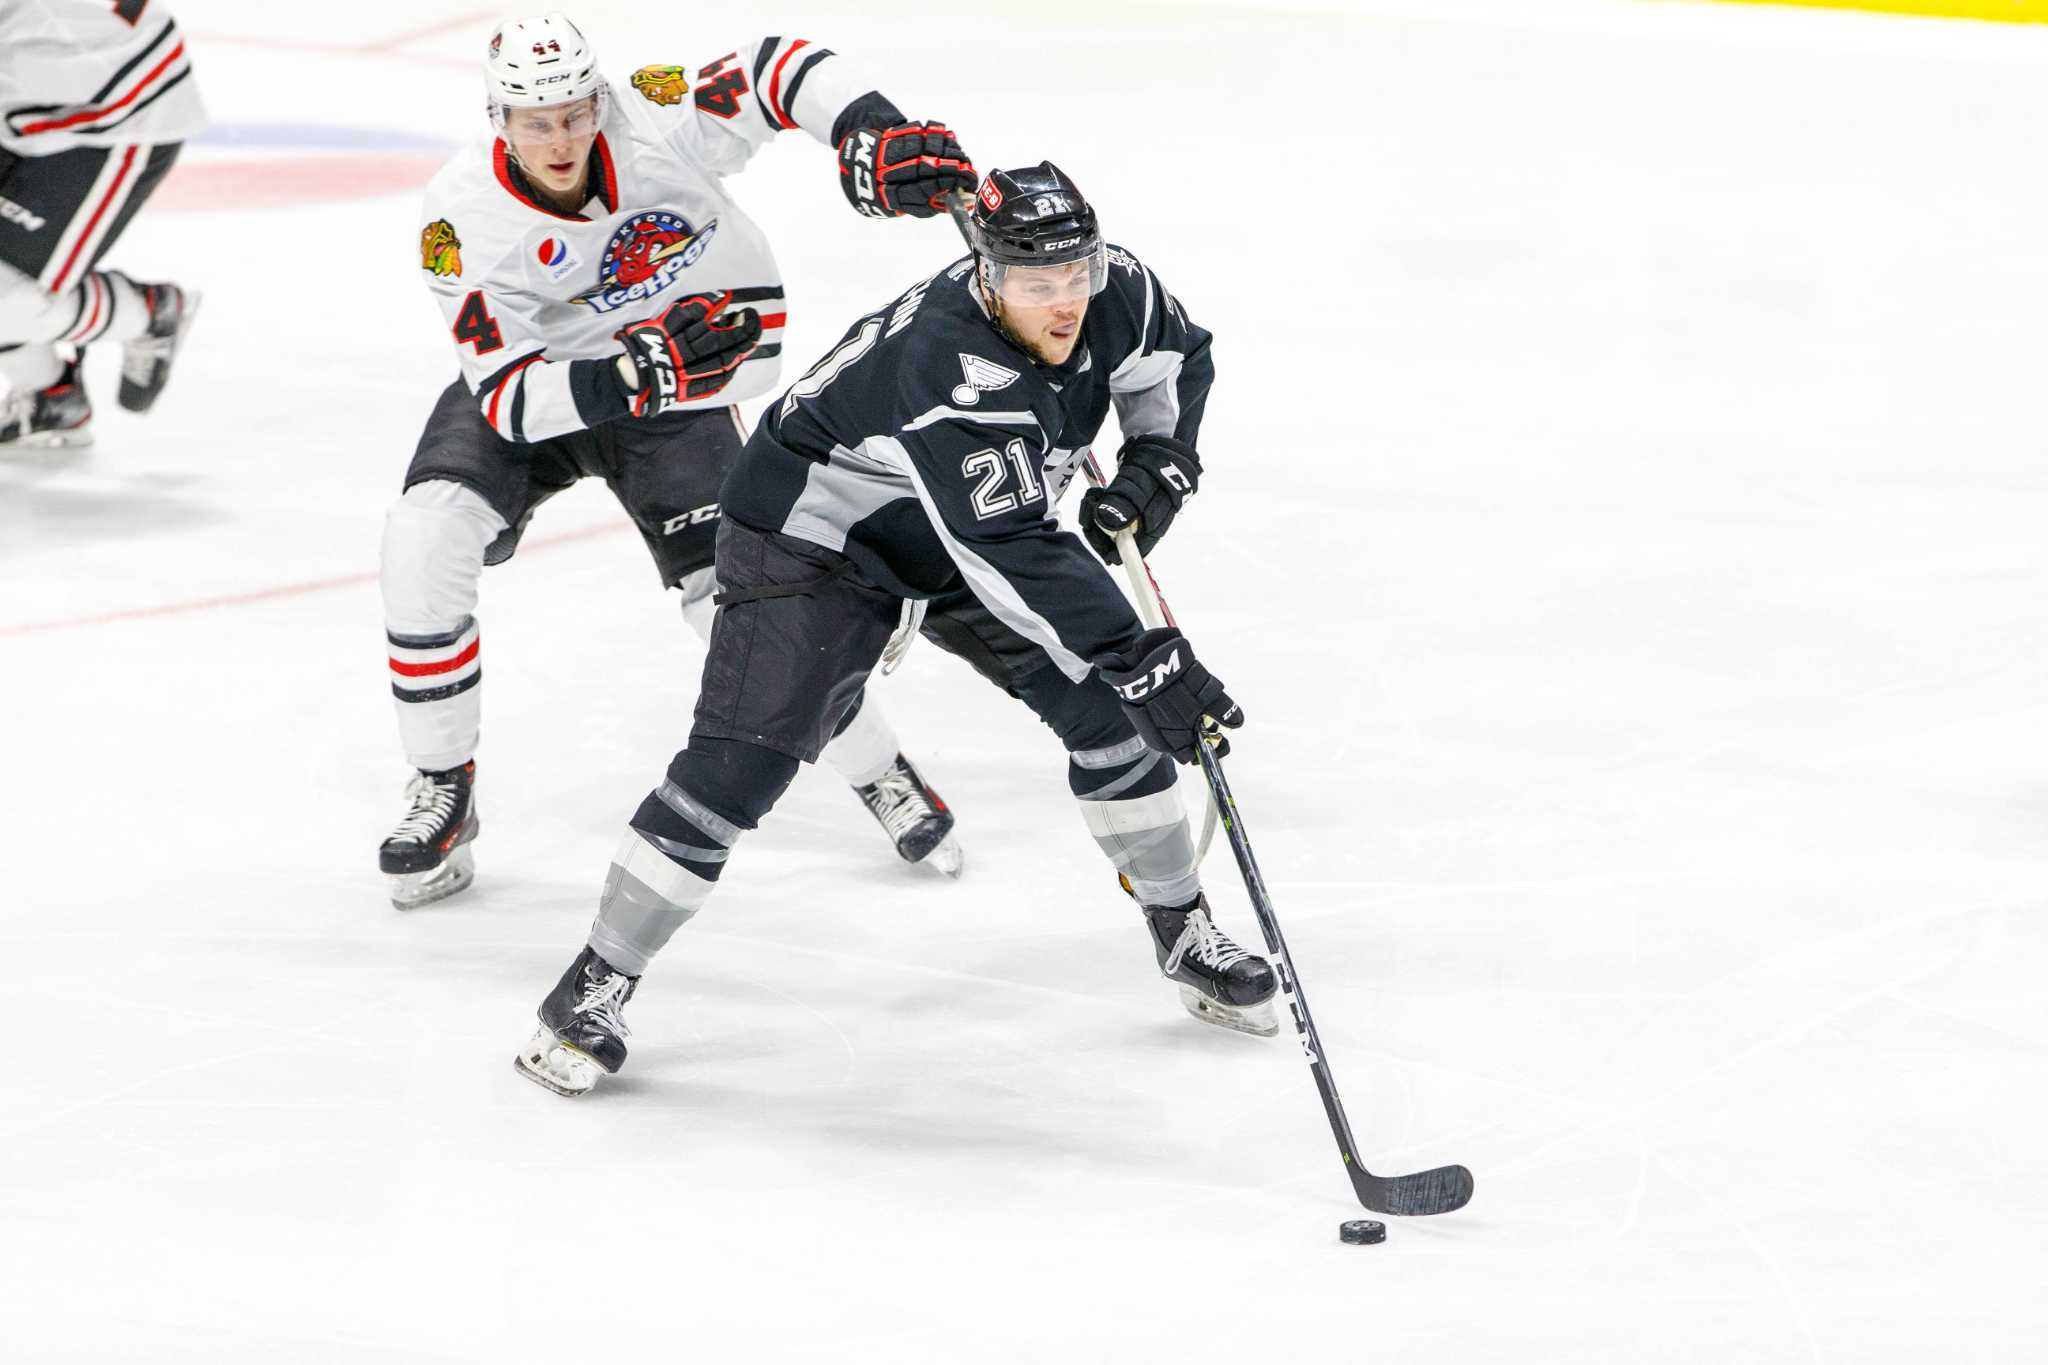 San Antonio Rampage yield flurry of goals in loss to Rockford